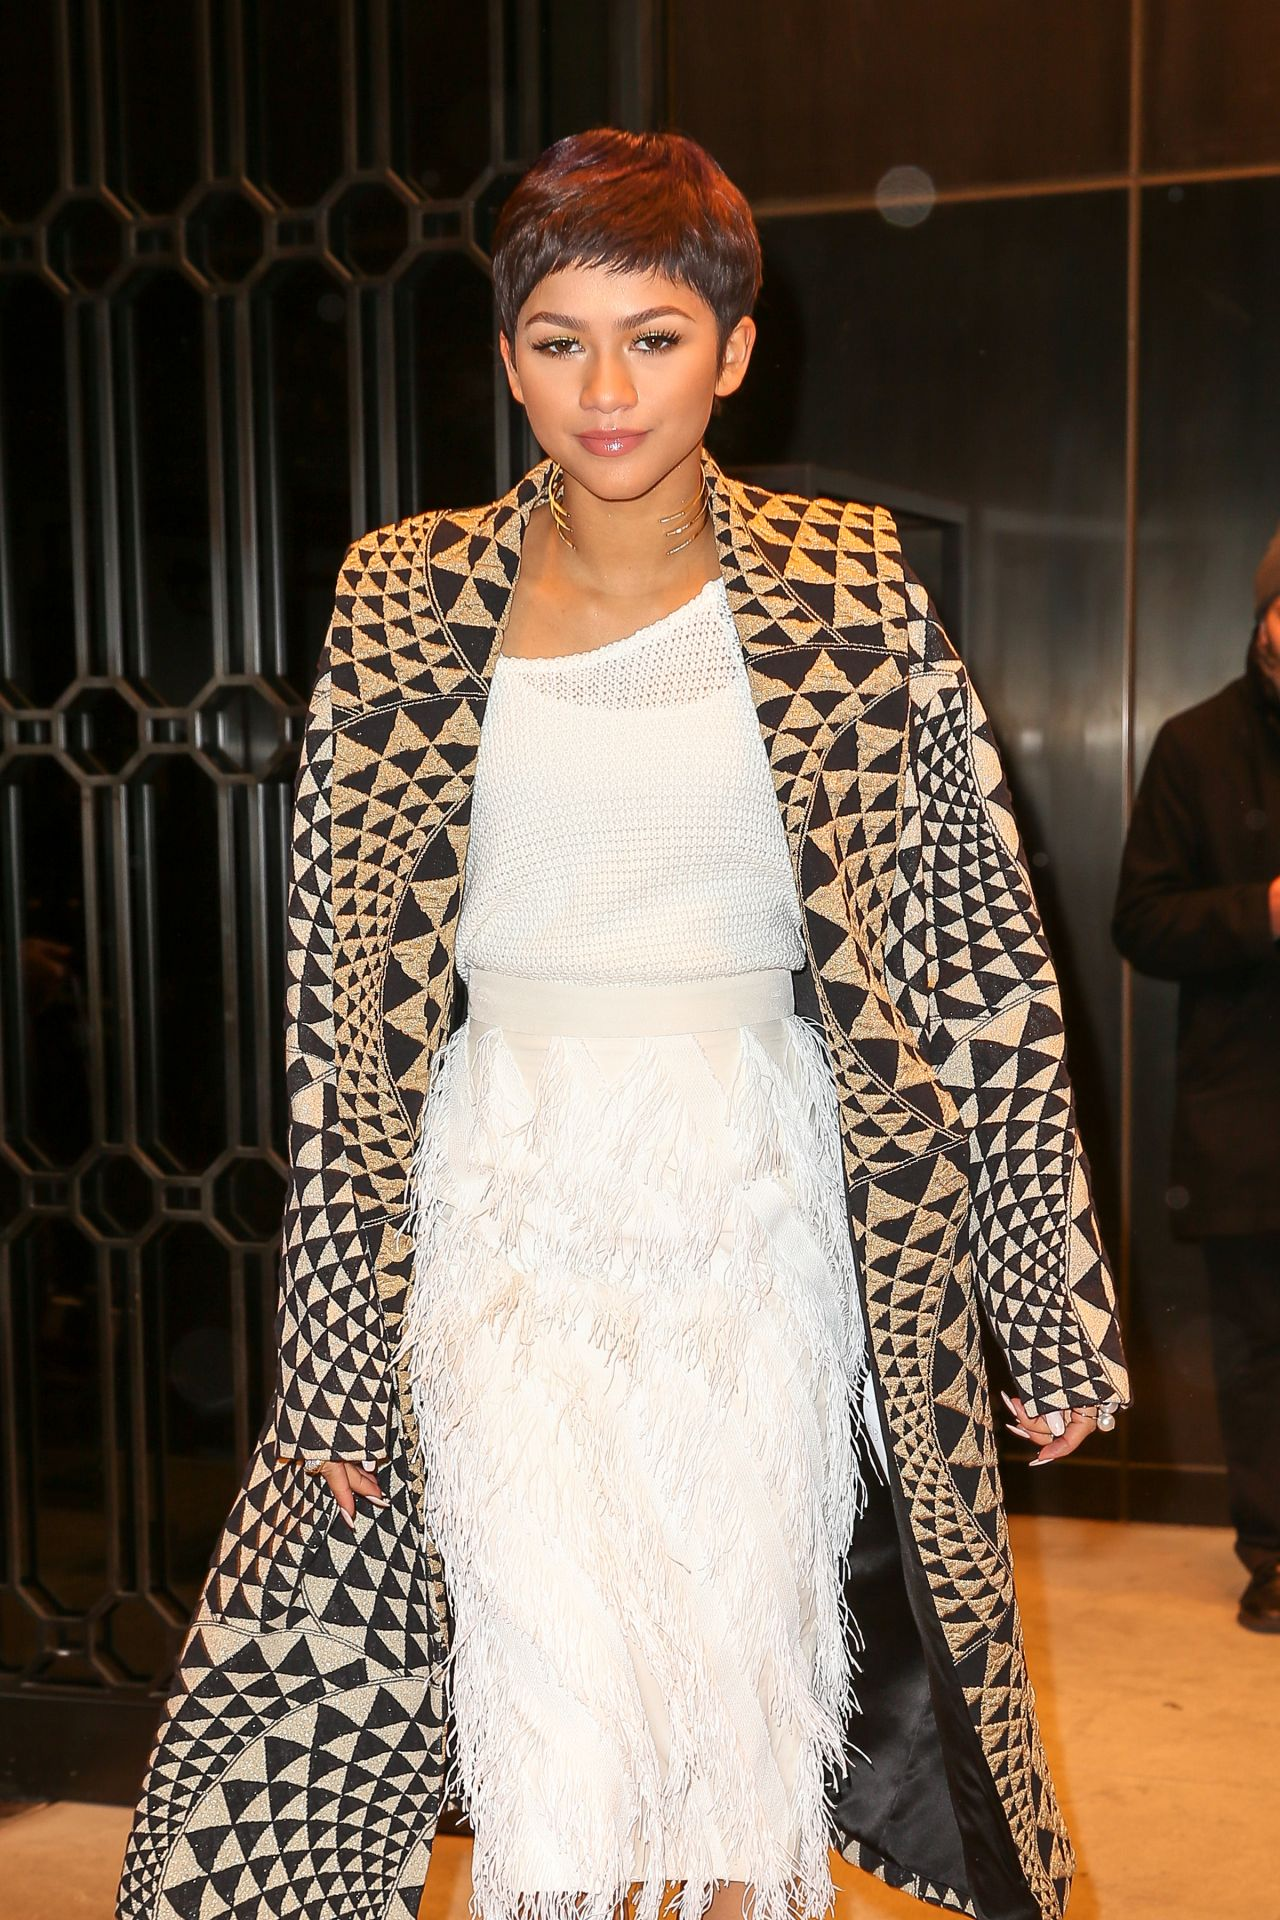 Zendaya With Her New Hairstyle – Leaving Her Hotel in New York City, Feb. 2015